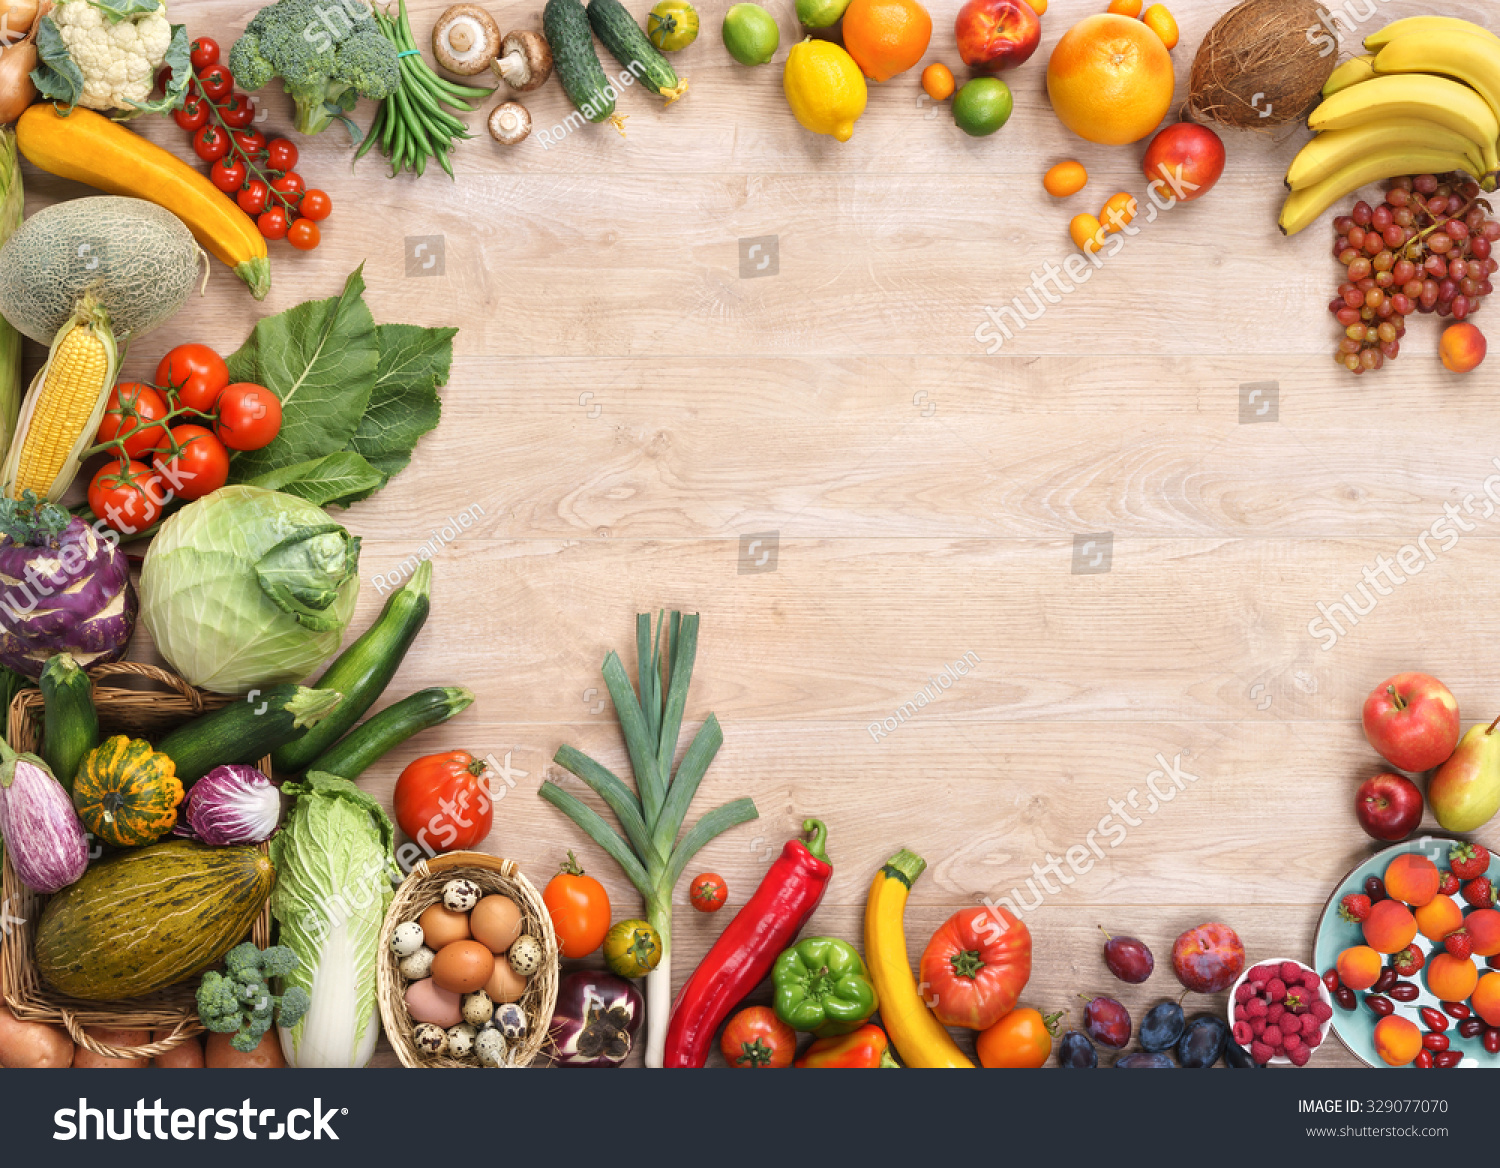 Healthy Foods Background High Resolution Product Stock ...